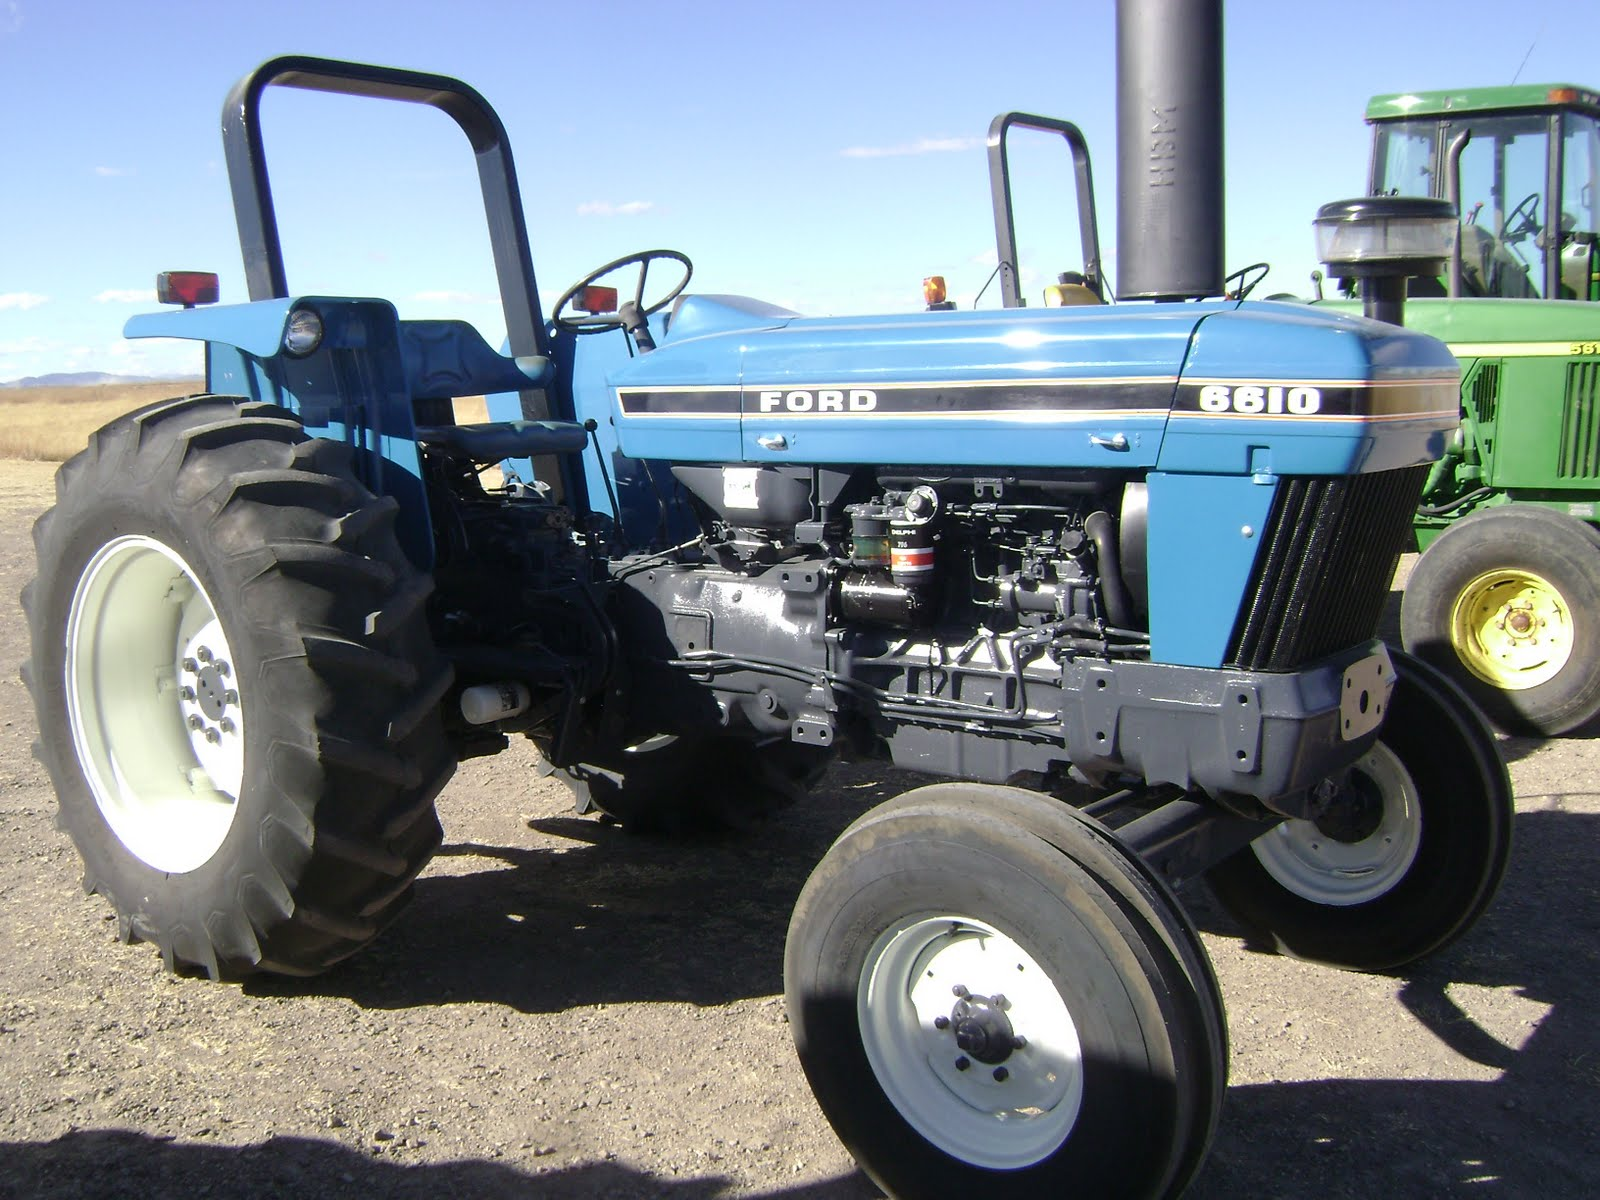 Wiring A Light On Ford 6610 Tractor Schematics Diagrams 2310 Harness Diagram 5610 New Holland Tc30